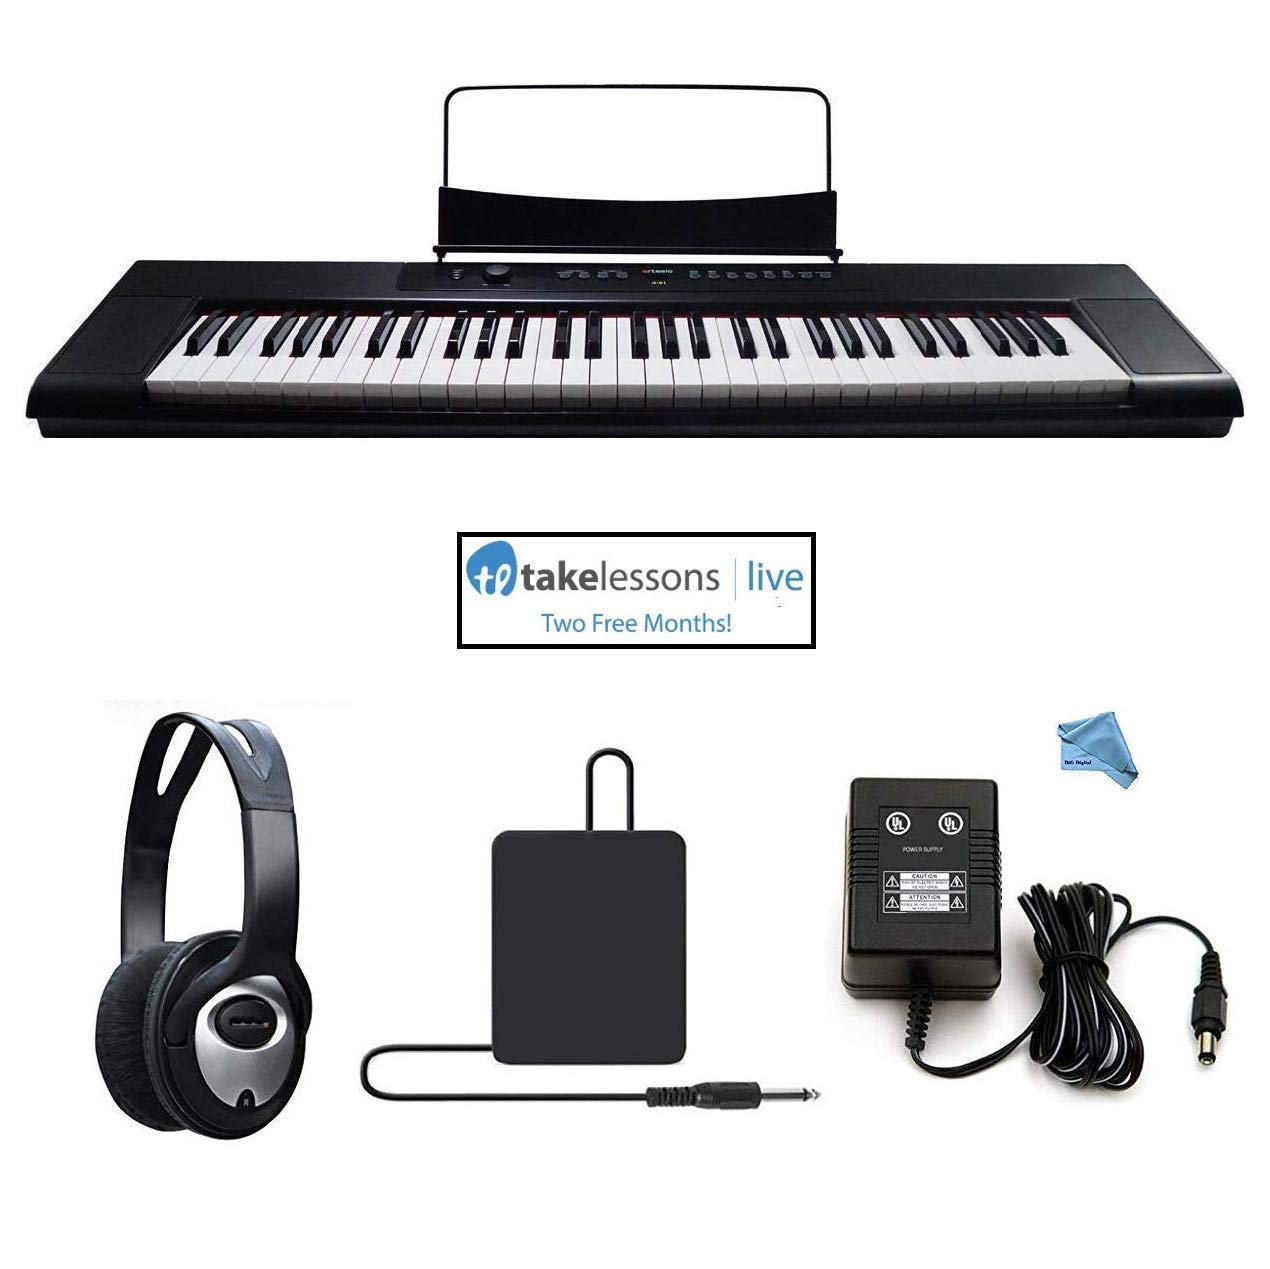 Artesia A-61 61 Key Semi-Weighted Action Keyboard Piano Bundle for Beginners and Students - 2 Months Piano Lessons - Stereo Headphone - Dust Cover - Sustain Pedal - Power Supply by Artesia